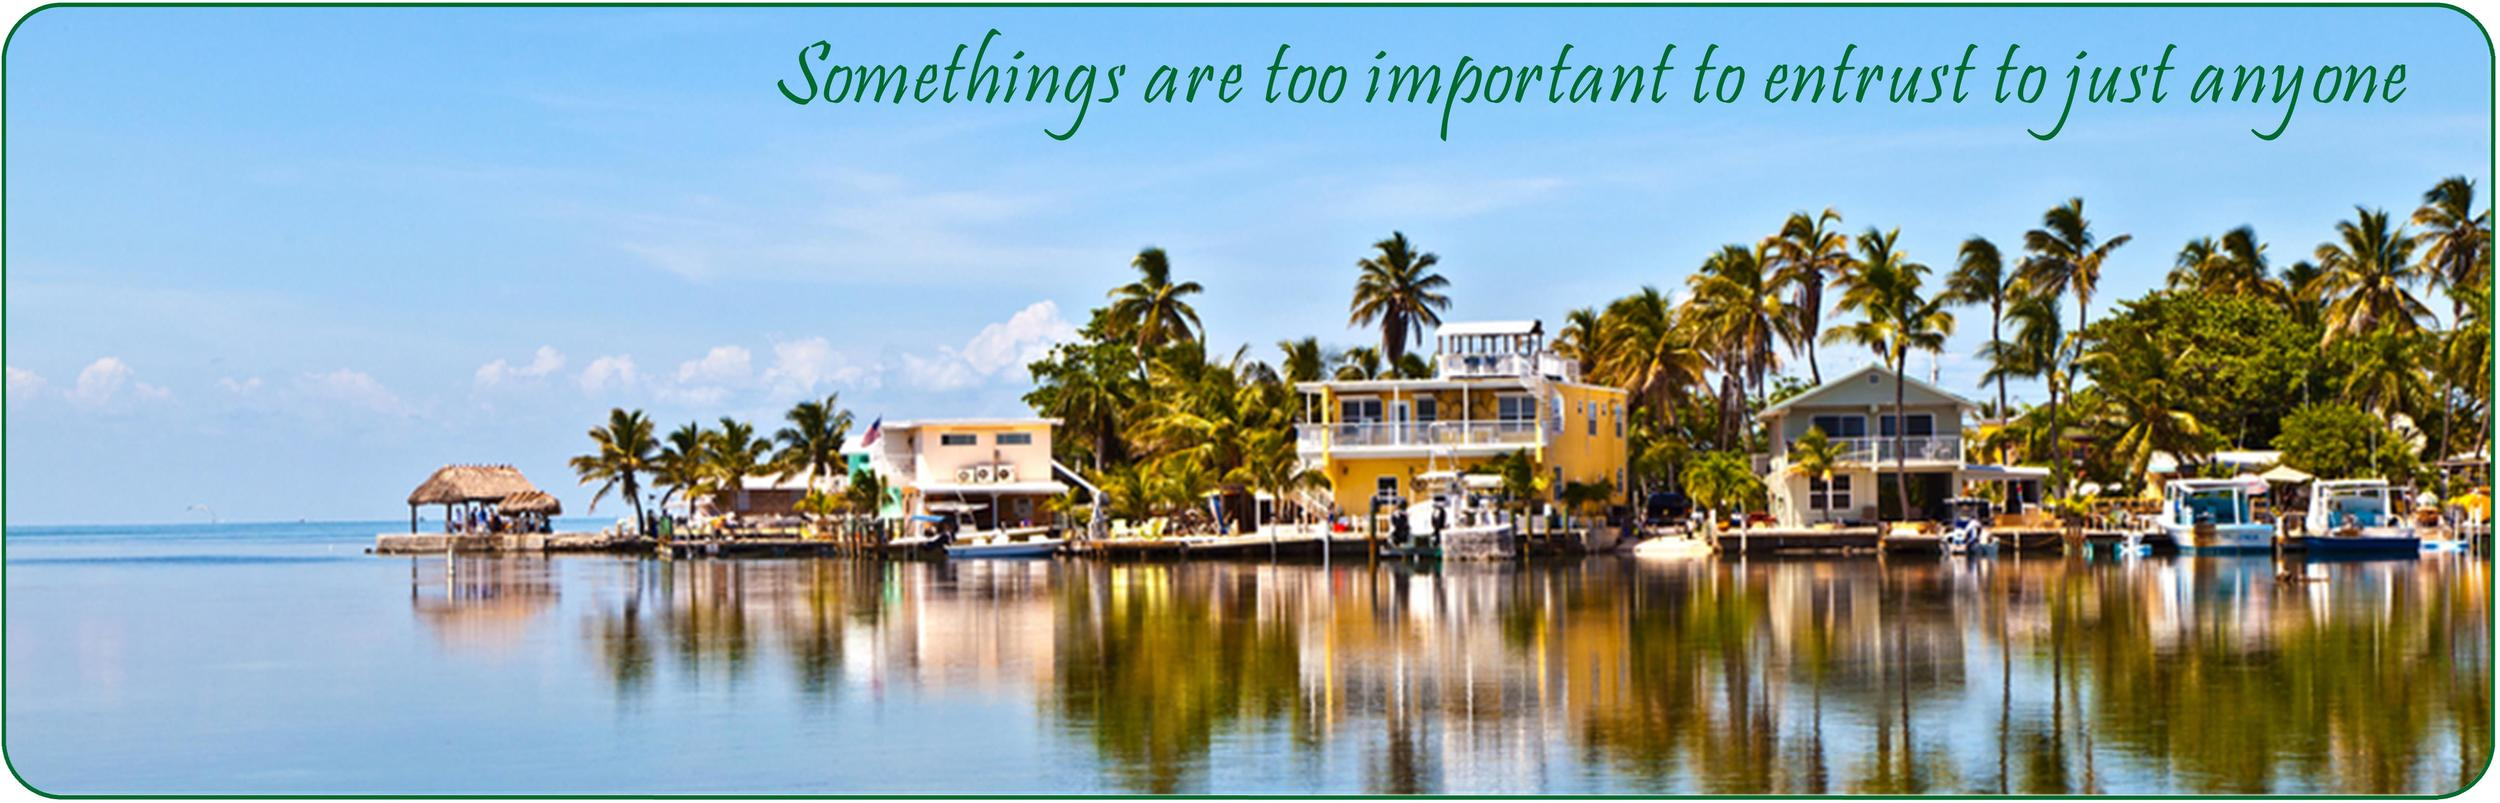 Business Insurance, Florida Keys